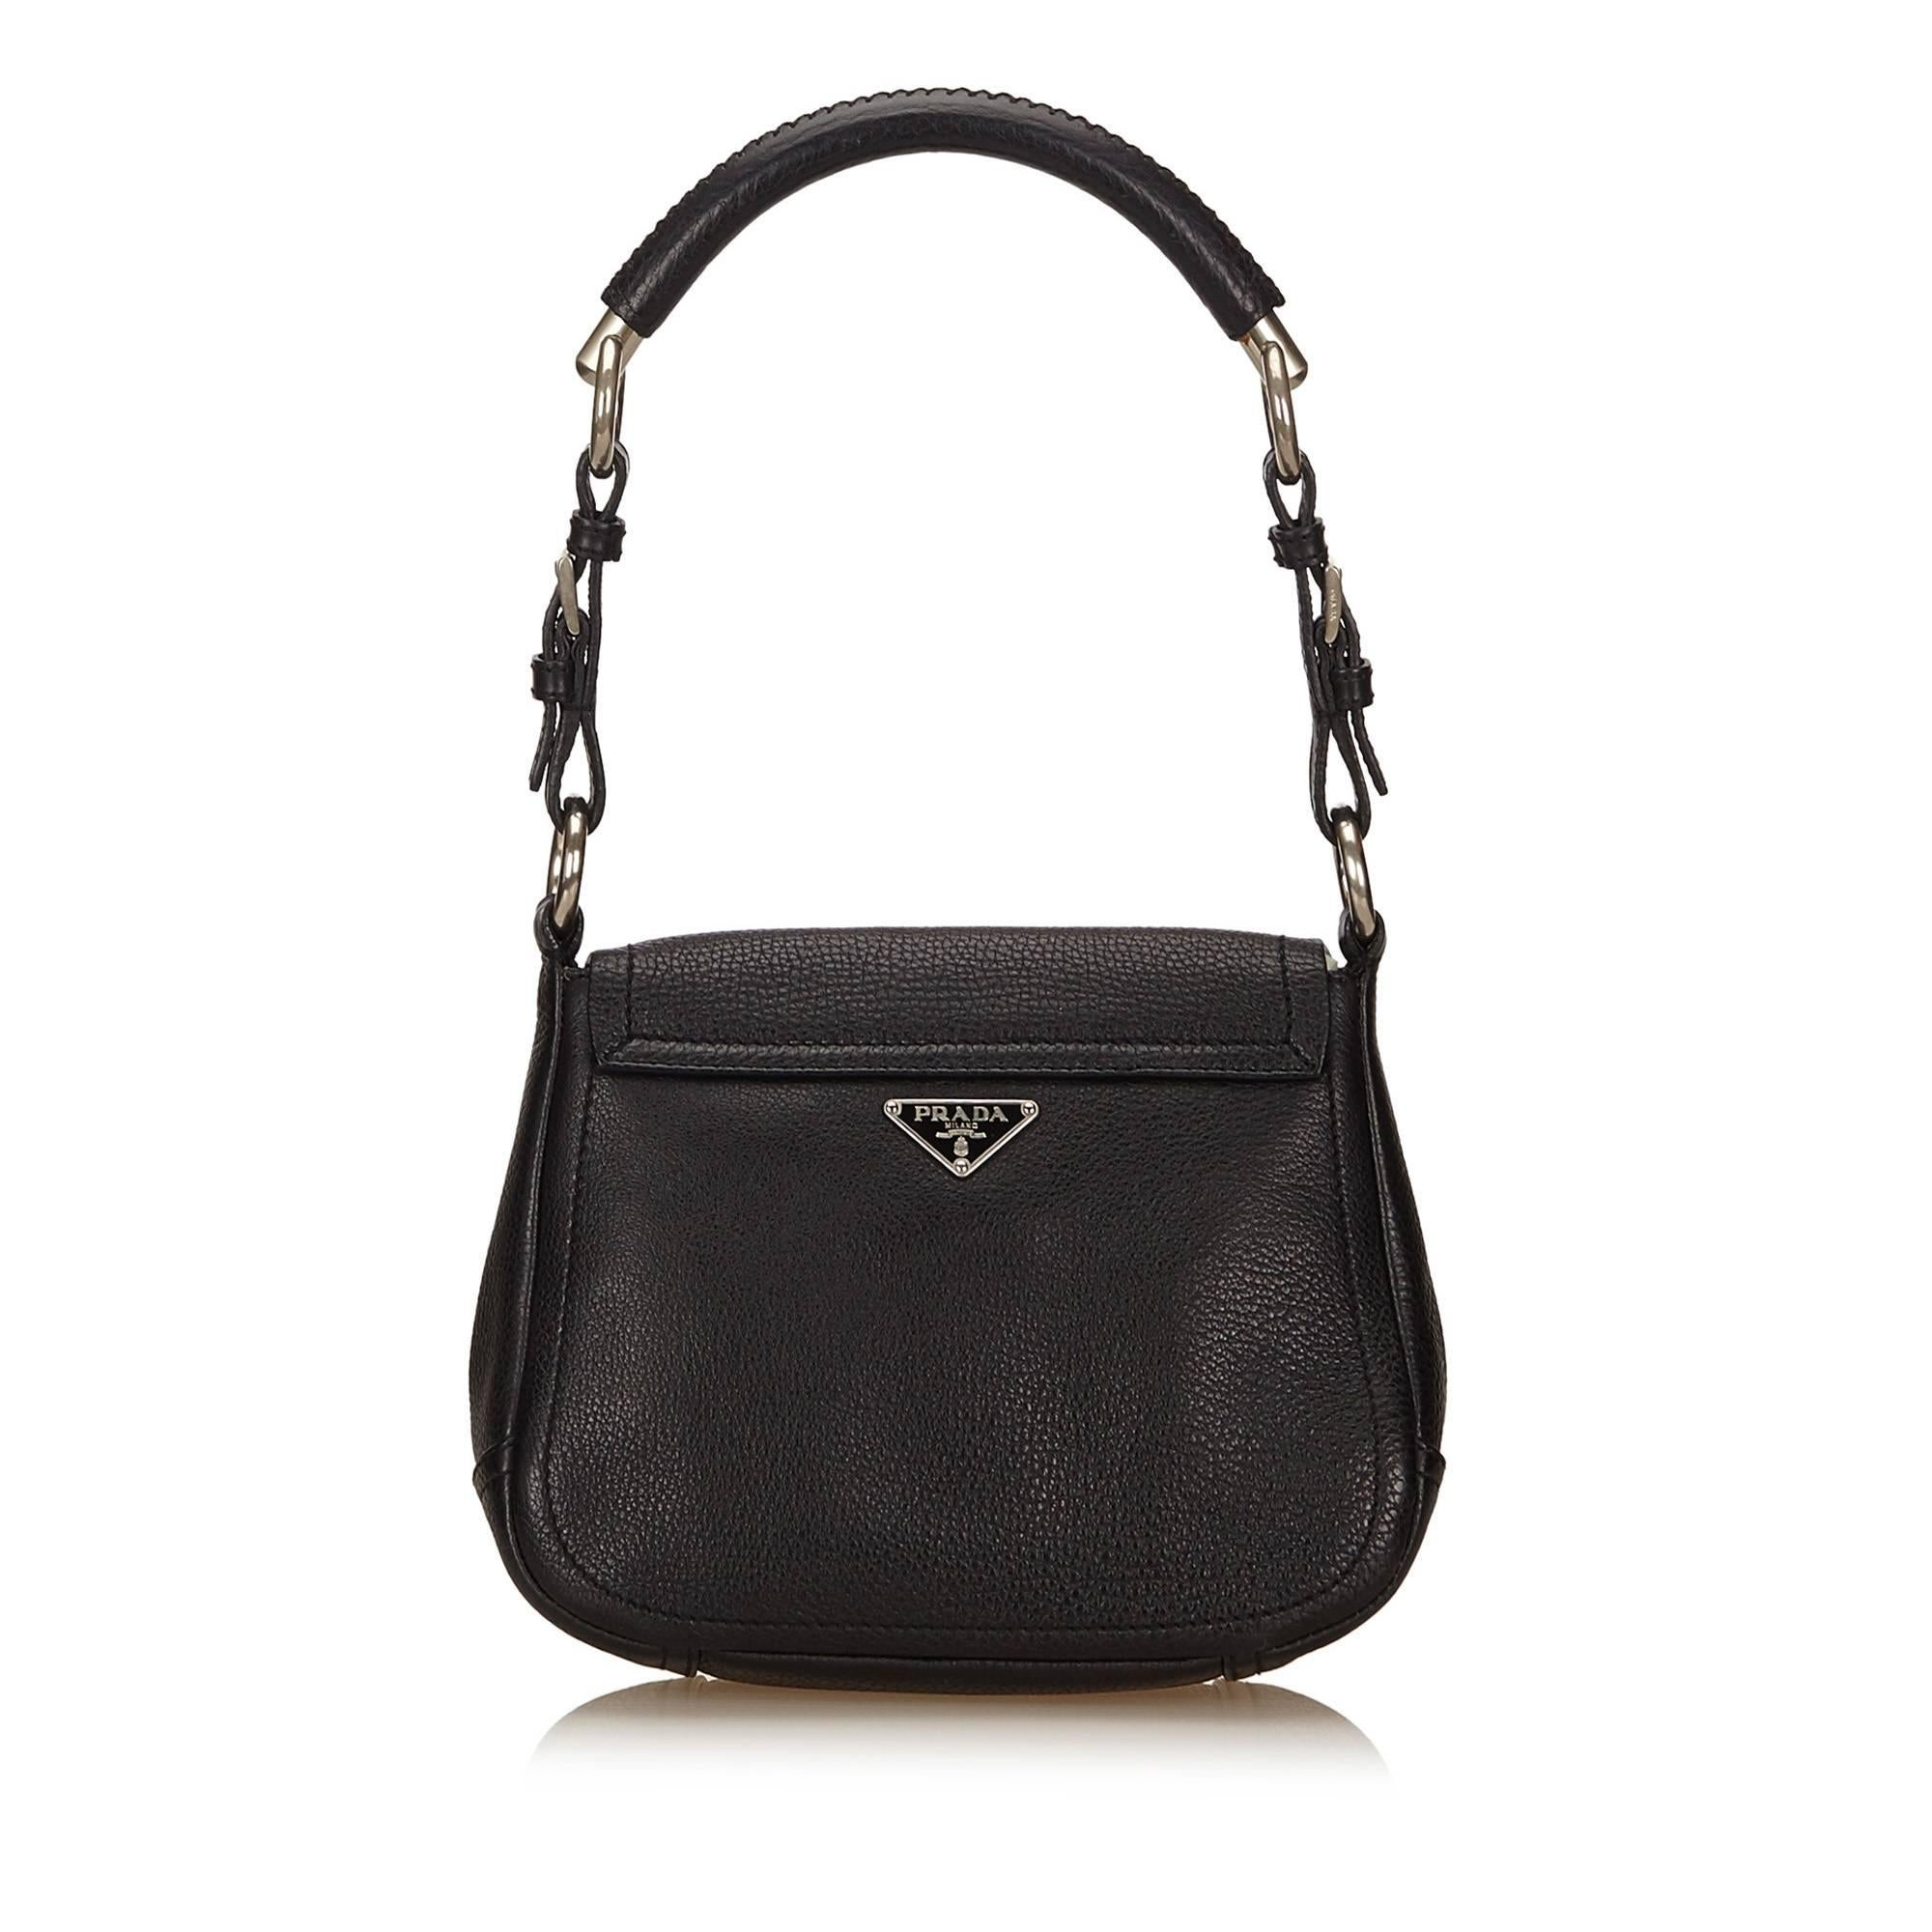 4f5c8eccfe85 Prada Black Leather Flap Shoulder Bag For Sale at 1stdibs